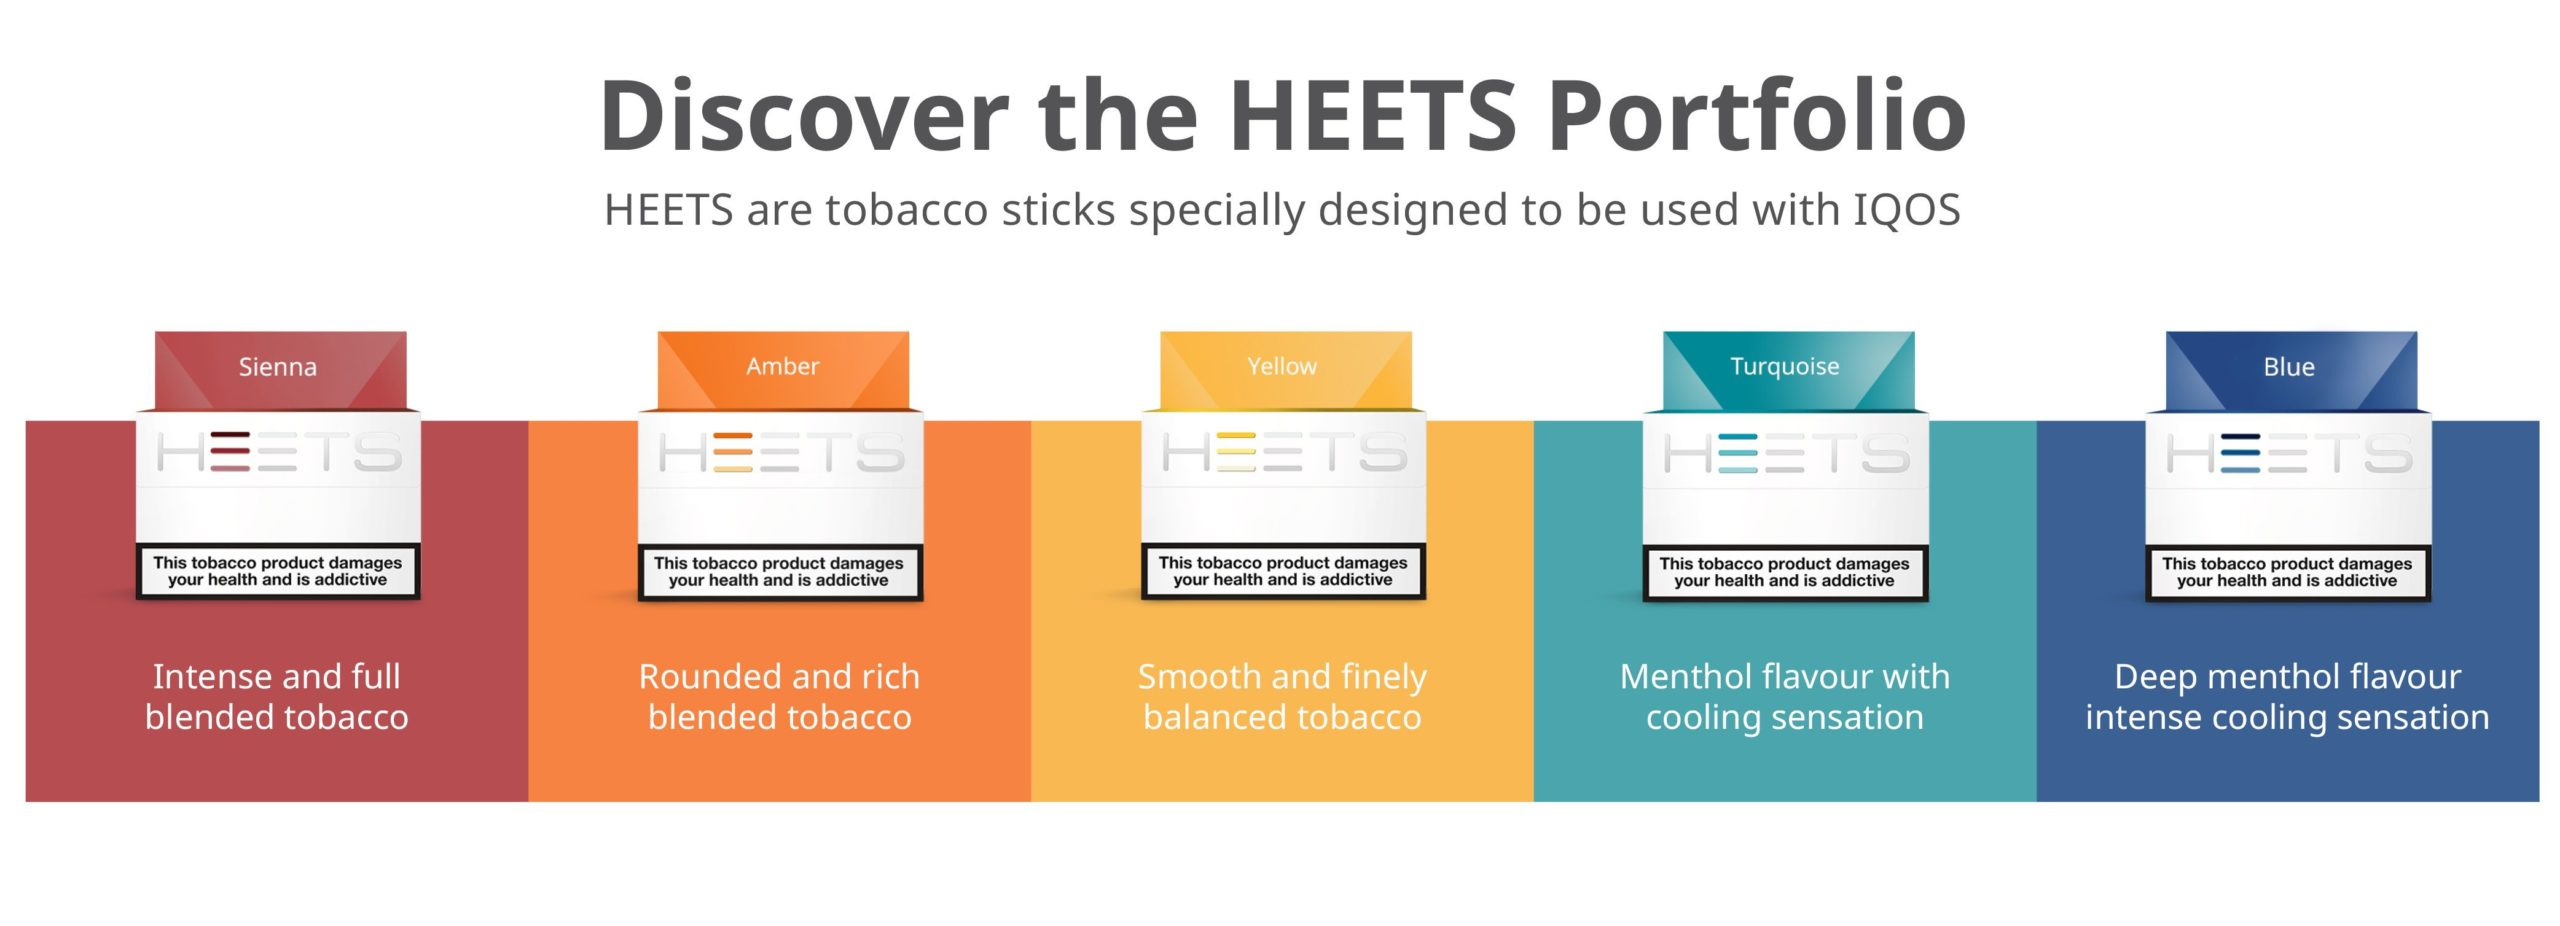 Discover the Real HEETS Yellow and Sienna Flavor - unitedwaythomasfirefund